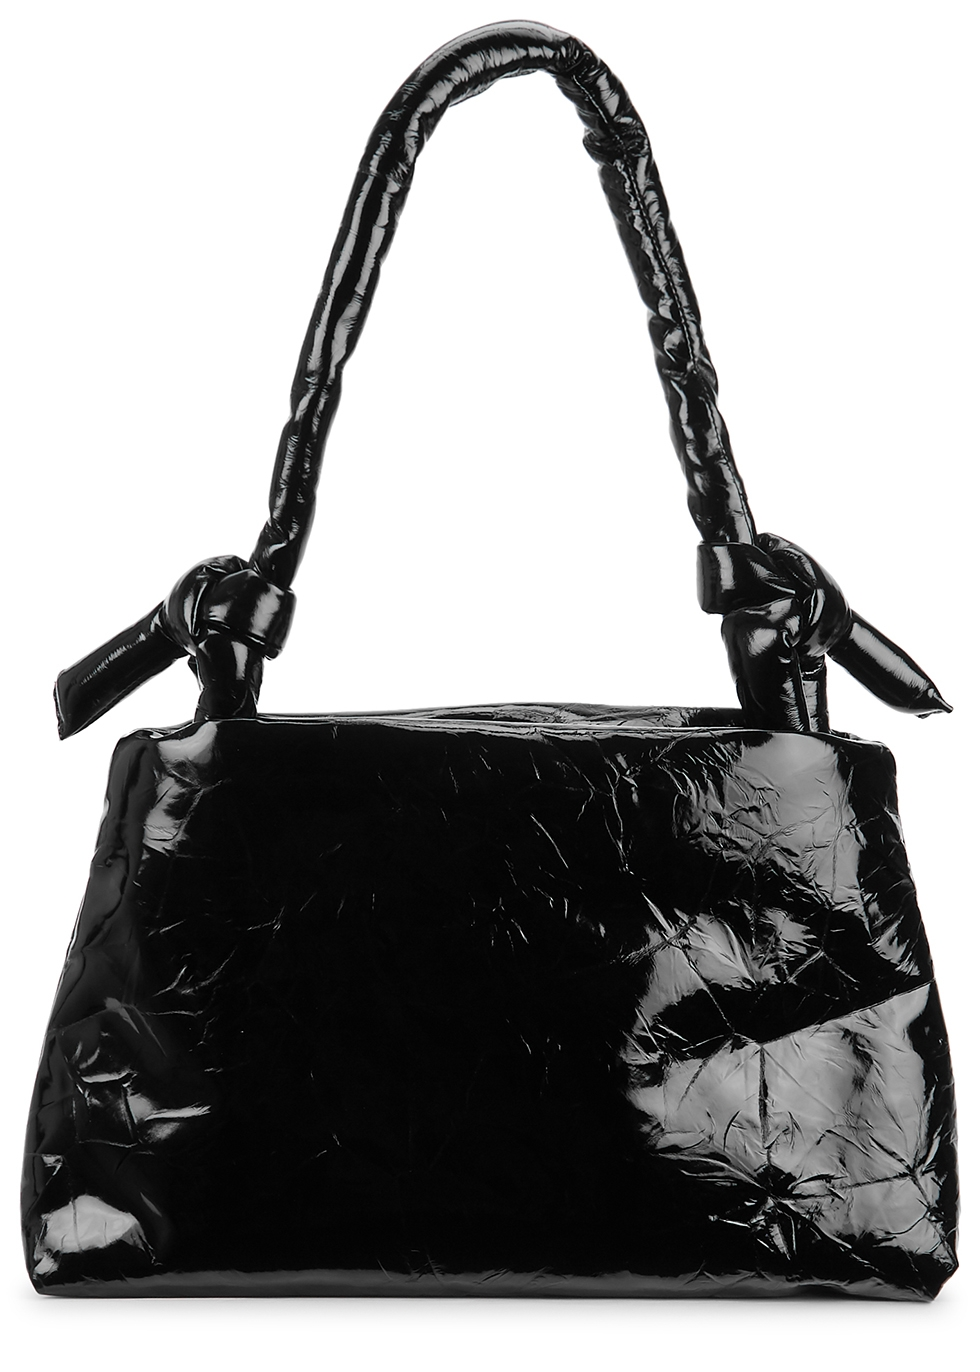 Lady black glossed leather tote